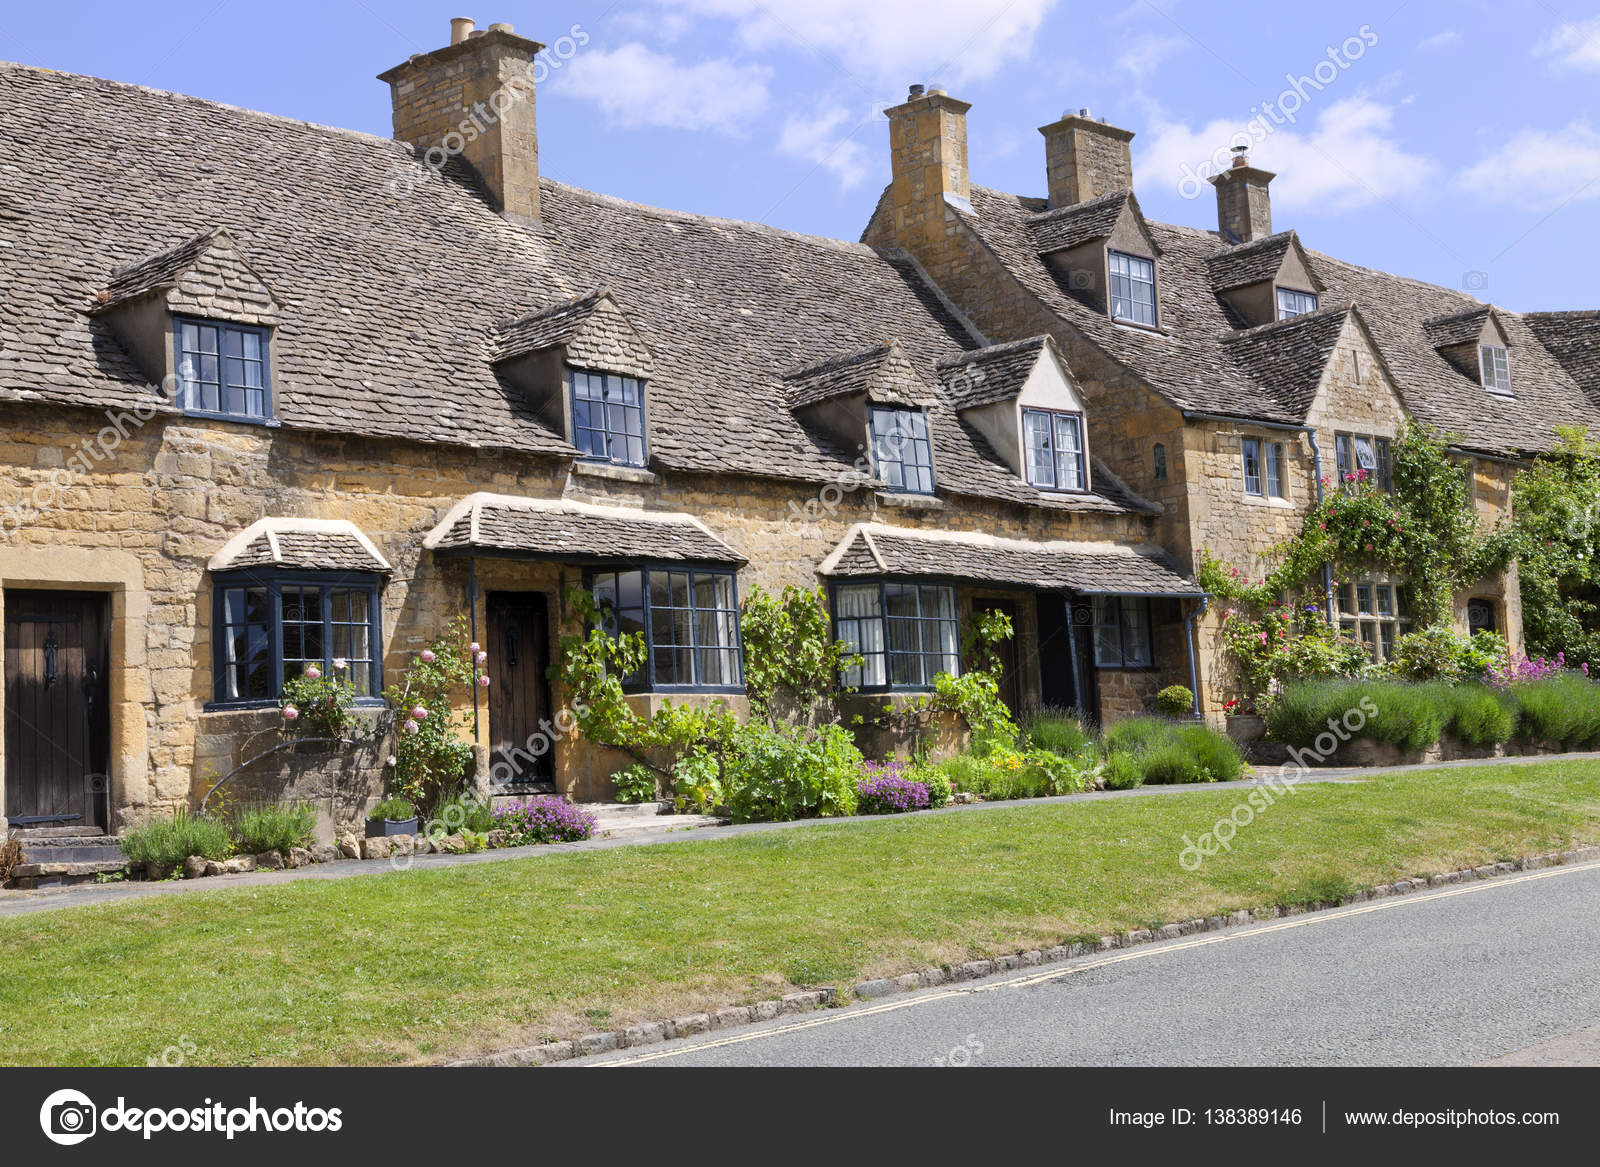 Cotswolds Village Road With Rows Of Old Traditional English Honey Golden Brown Stoned Cottages Colorful Flowering Front Gardens On A Summer Sunny Day